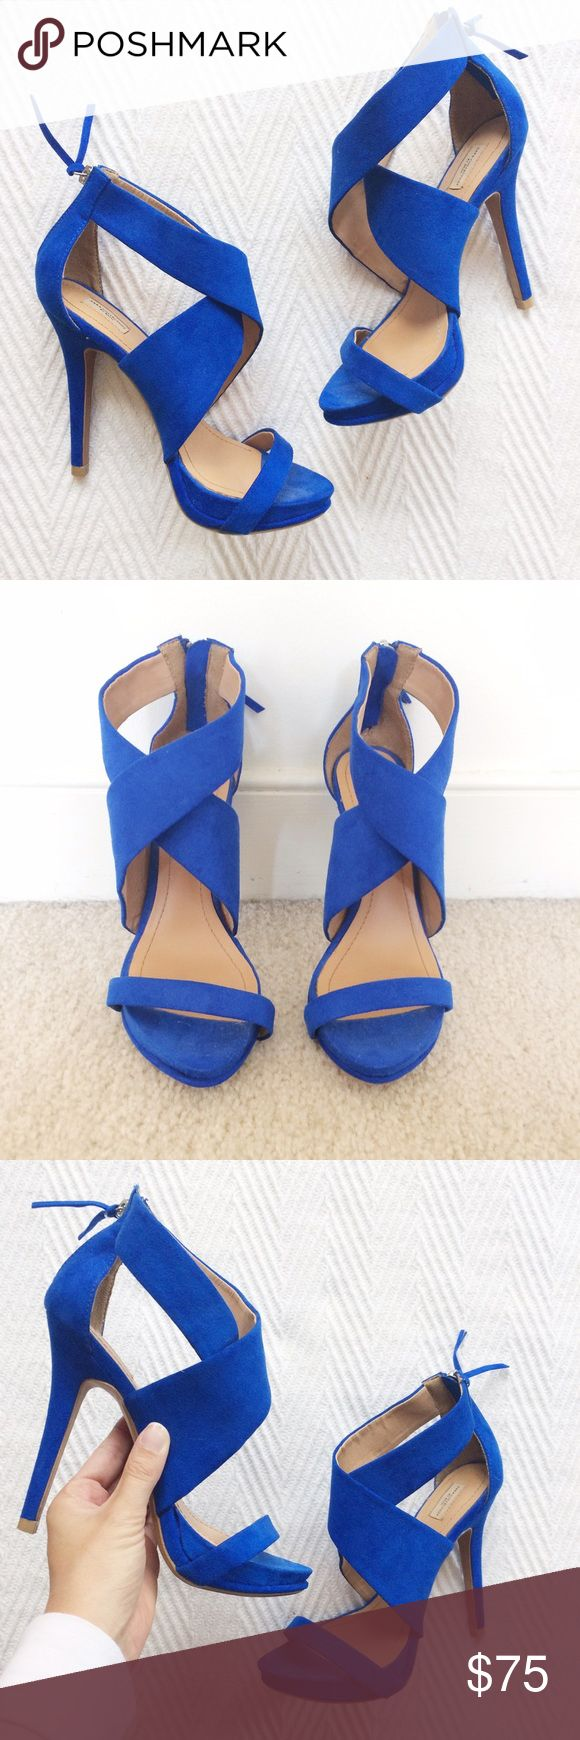 Zara Blue Strappy Sandals Only worn once! Still in perfect condition!! Royal Blue suede. Gorgeous statement heels. Can ship same- day as purchase! Zara Shoes Sandals